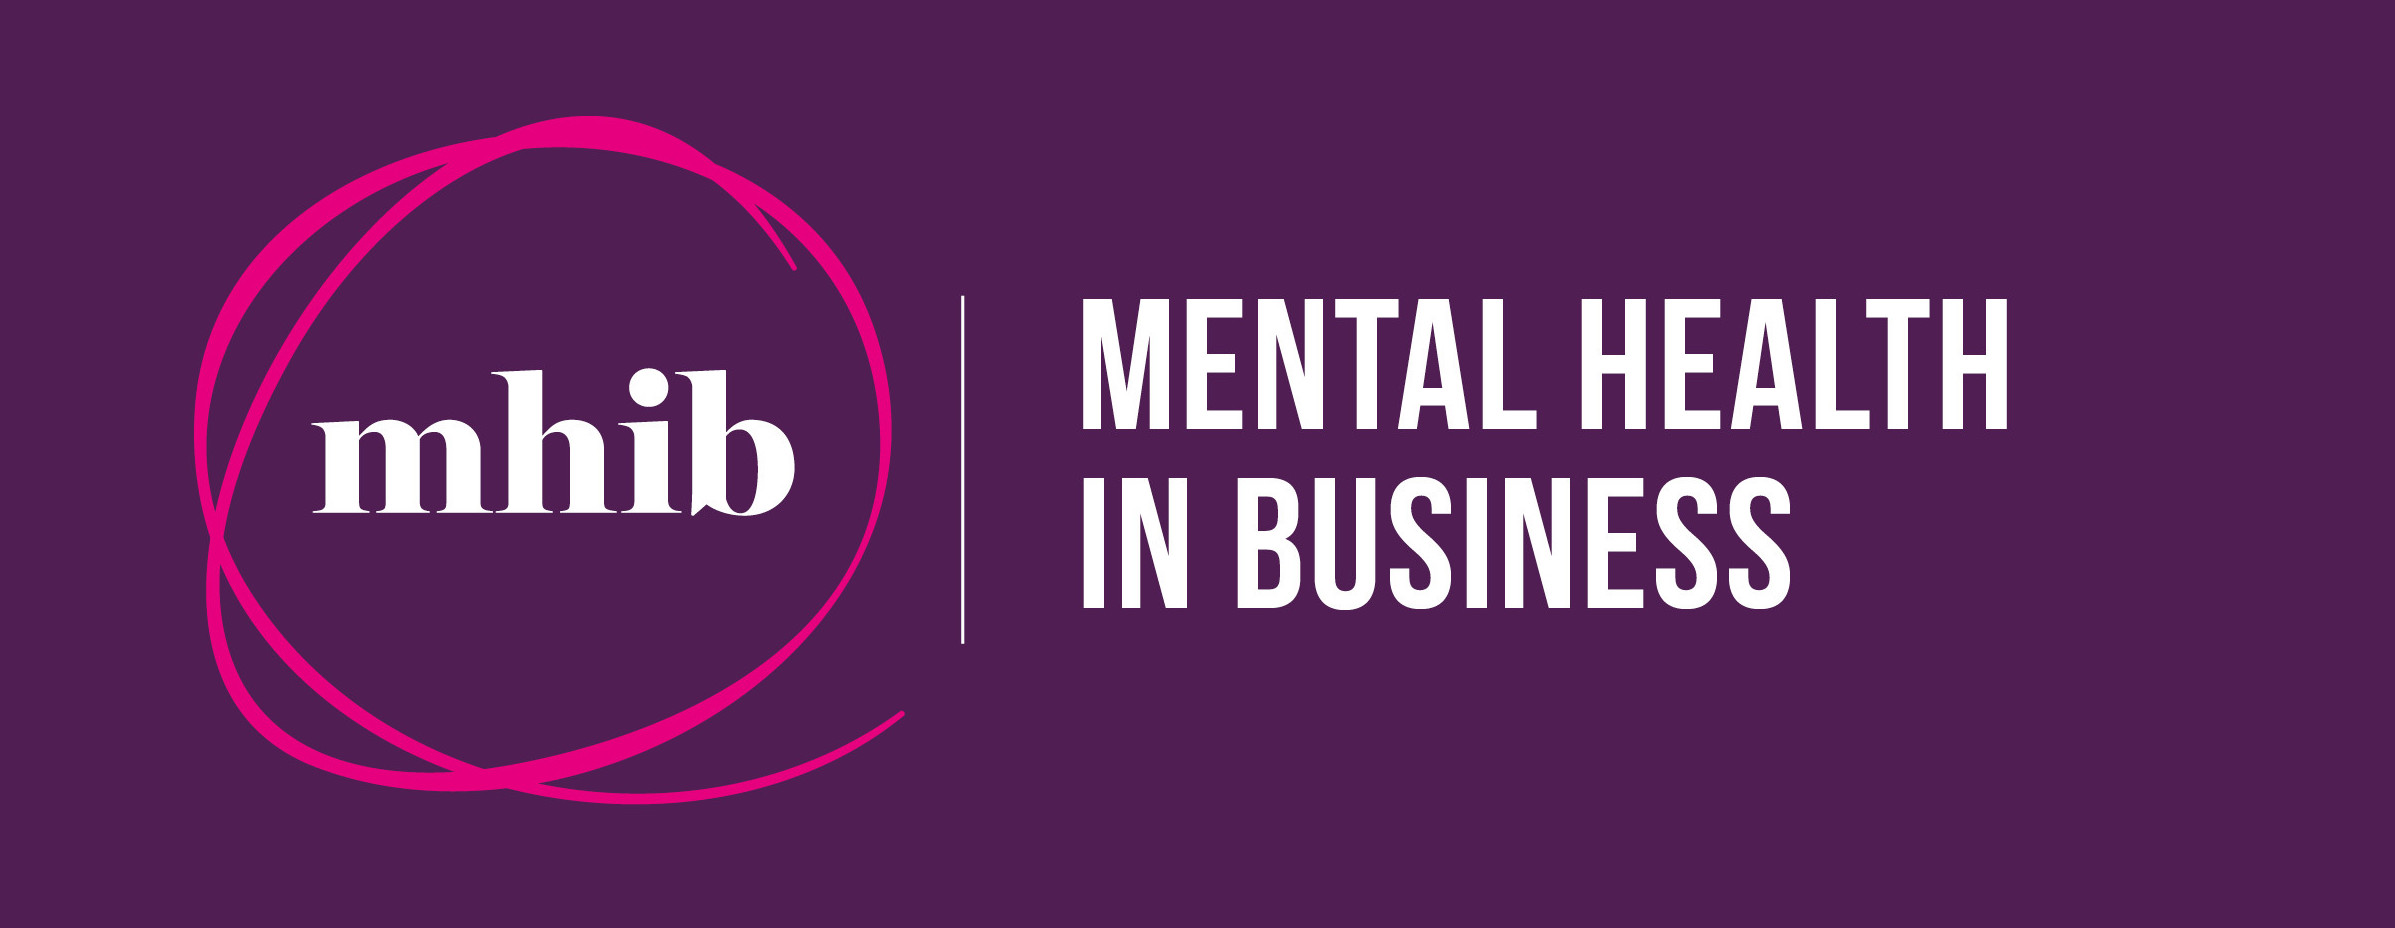 Mental Health in Business Ltd